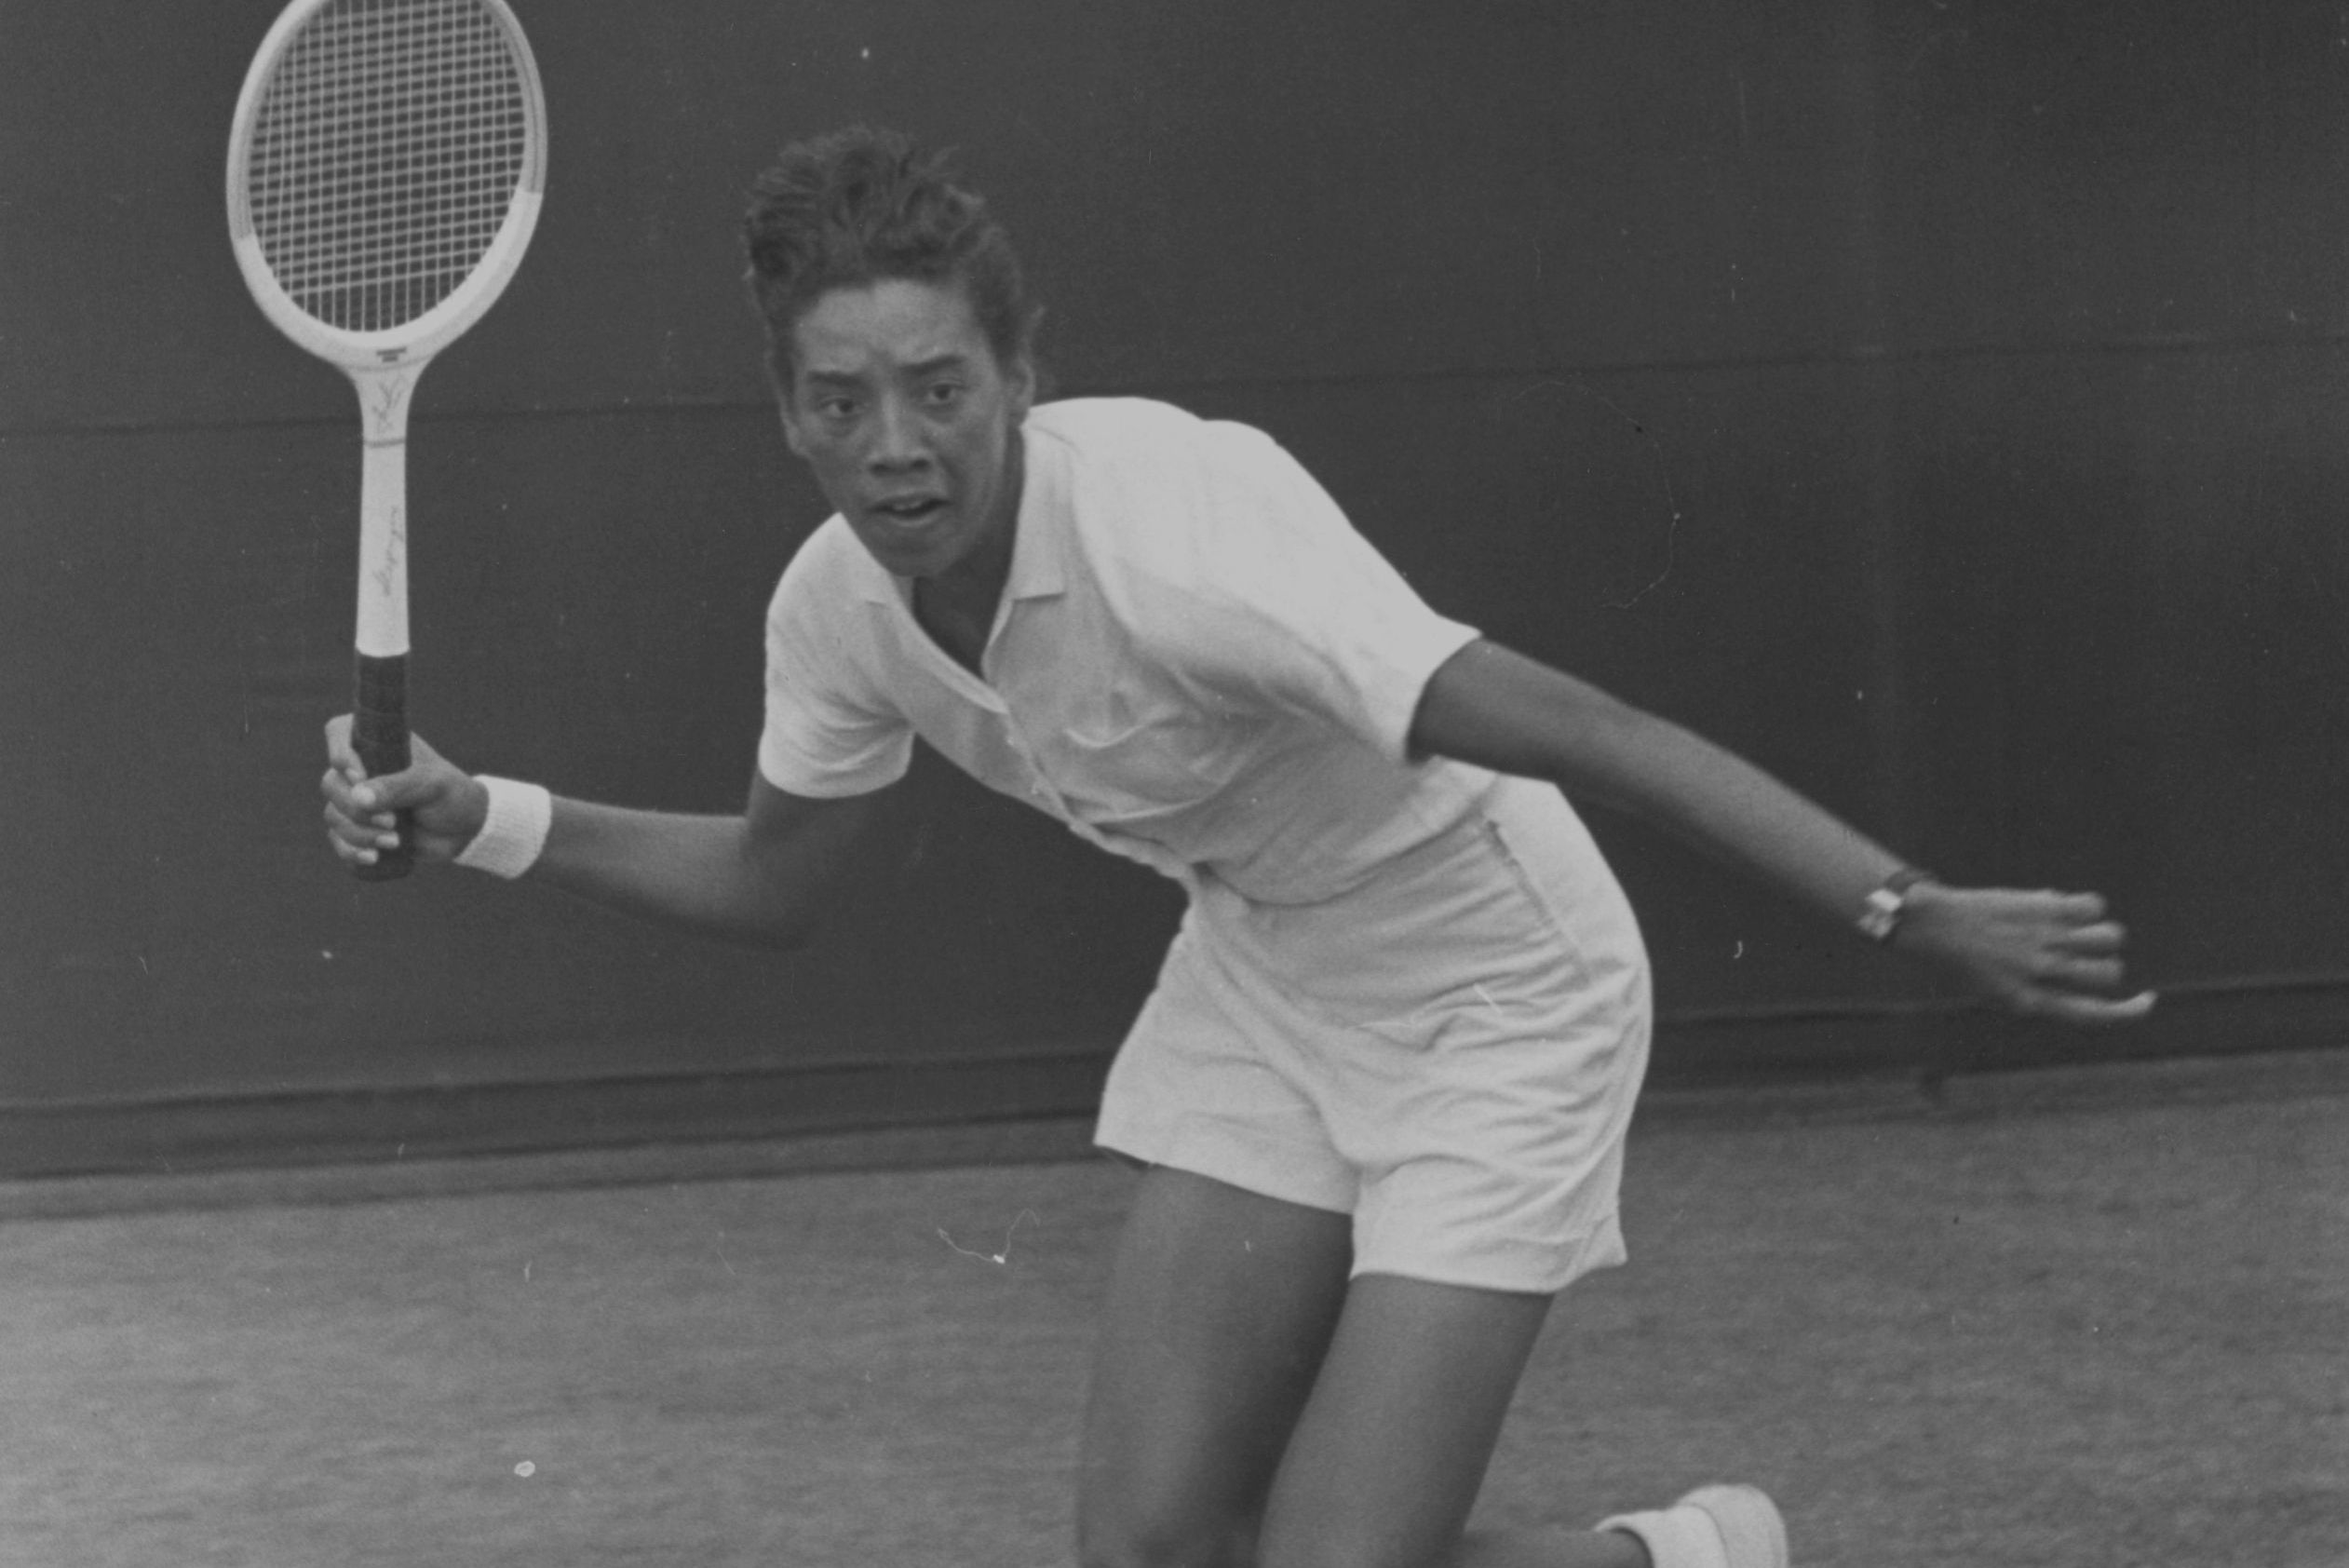 a biography of althea gibson an american tennis player Althea gibson was a tennis player and later professional golfer who became the first african american woman to cross the racial barrier and compete professionally in both sports she was born on august 25, 1927 in south carolina.